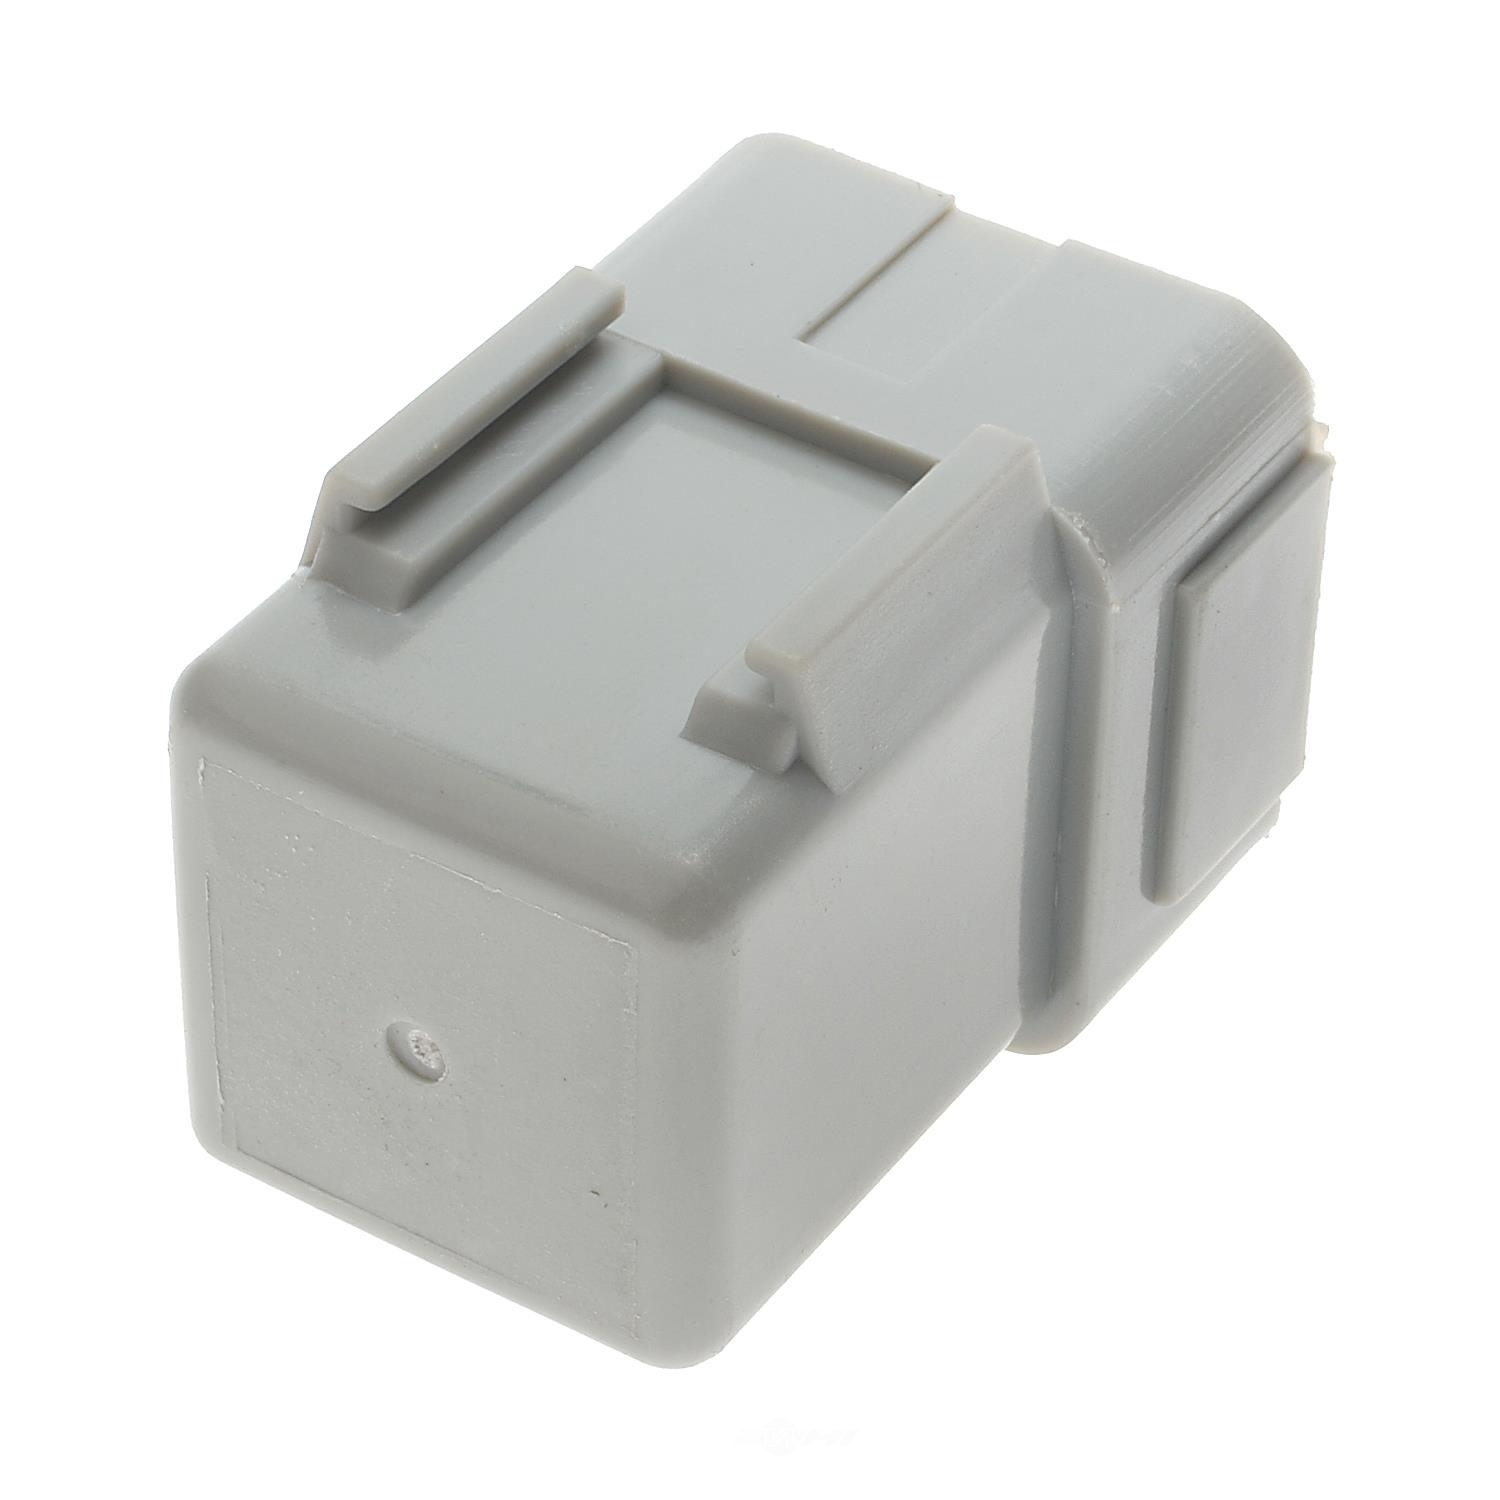 STANDARD T-SERIES - Engine Cooling Fan Motor Relay - STT RY27T